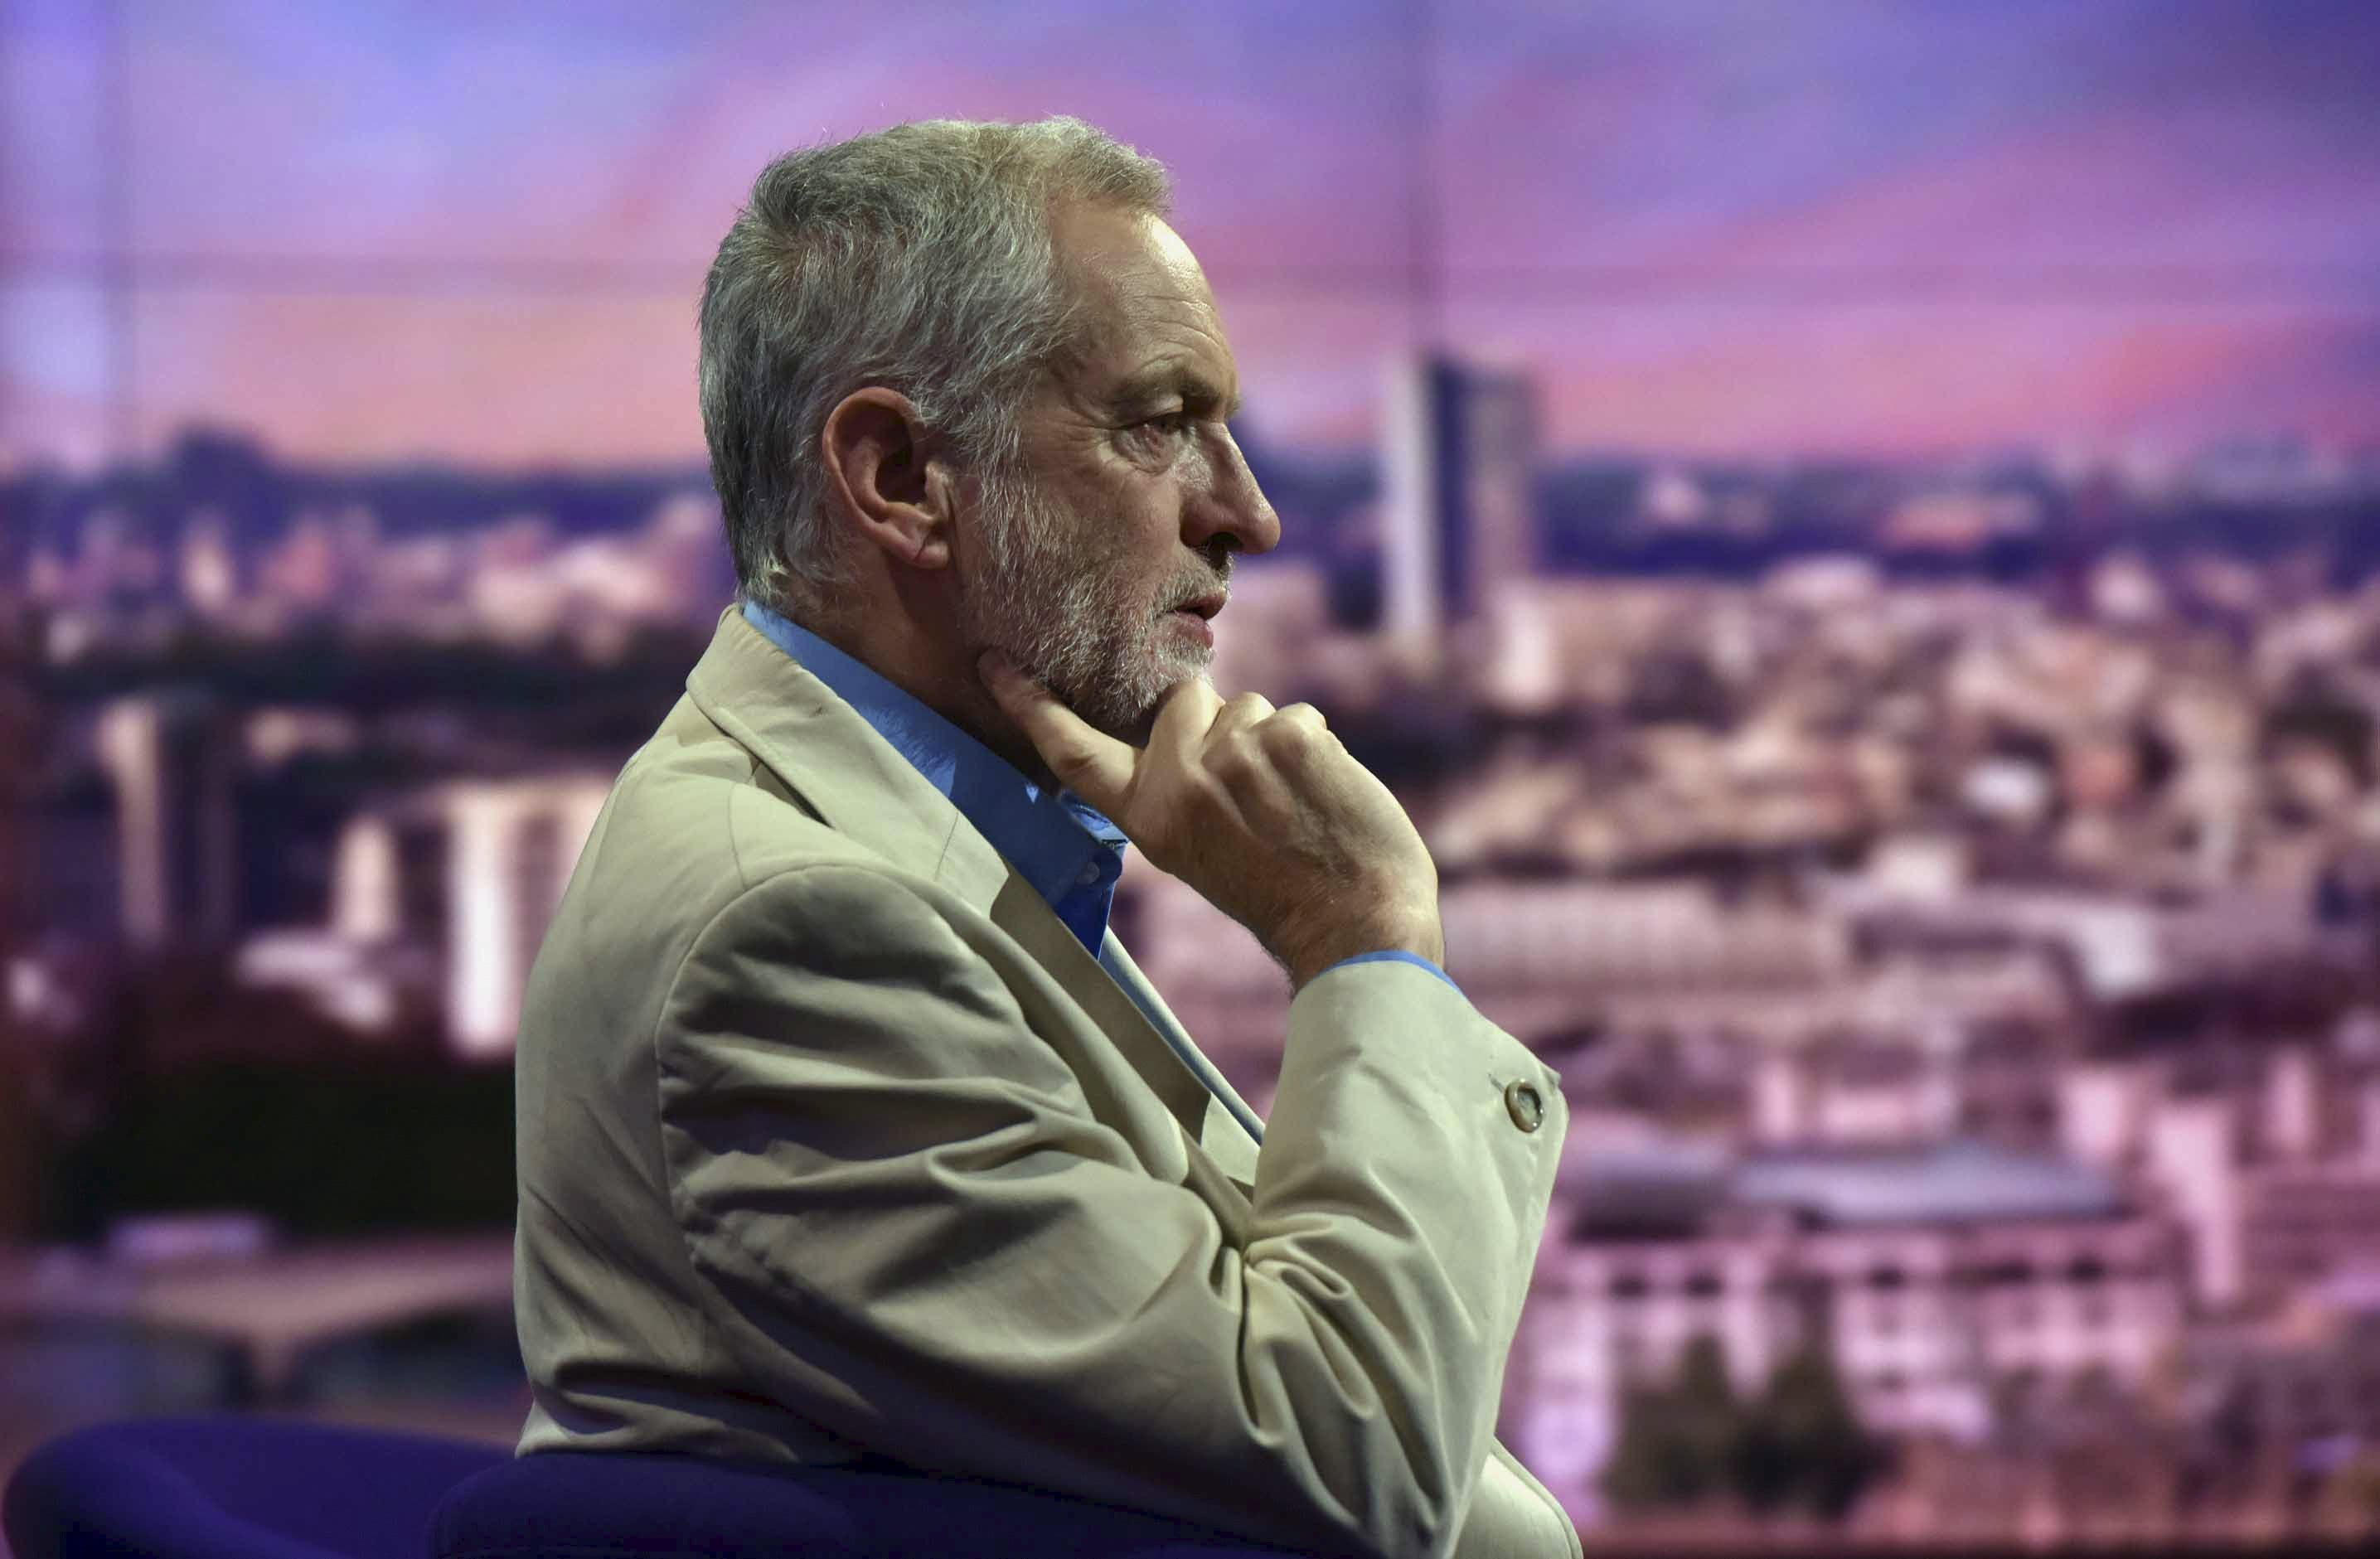 Labour Party leadership candidate Jeremy Corbyn is seen appearing on the BBC's Andrew Marr Show in this photograph received via the BBC in London July 26, 2015. REUTERS/Jeff Overs/BBC/Handout via Reuters